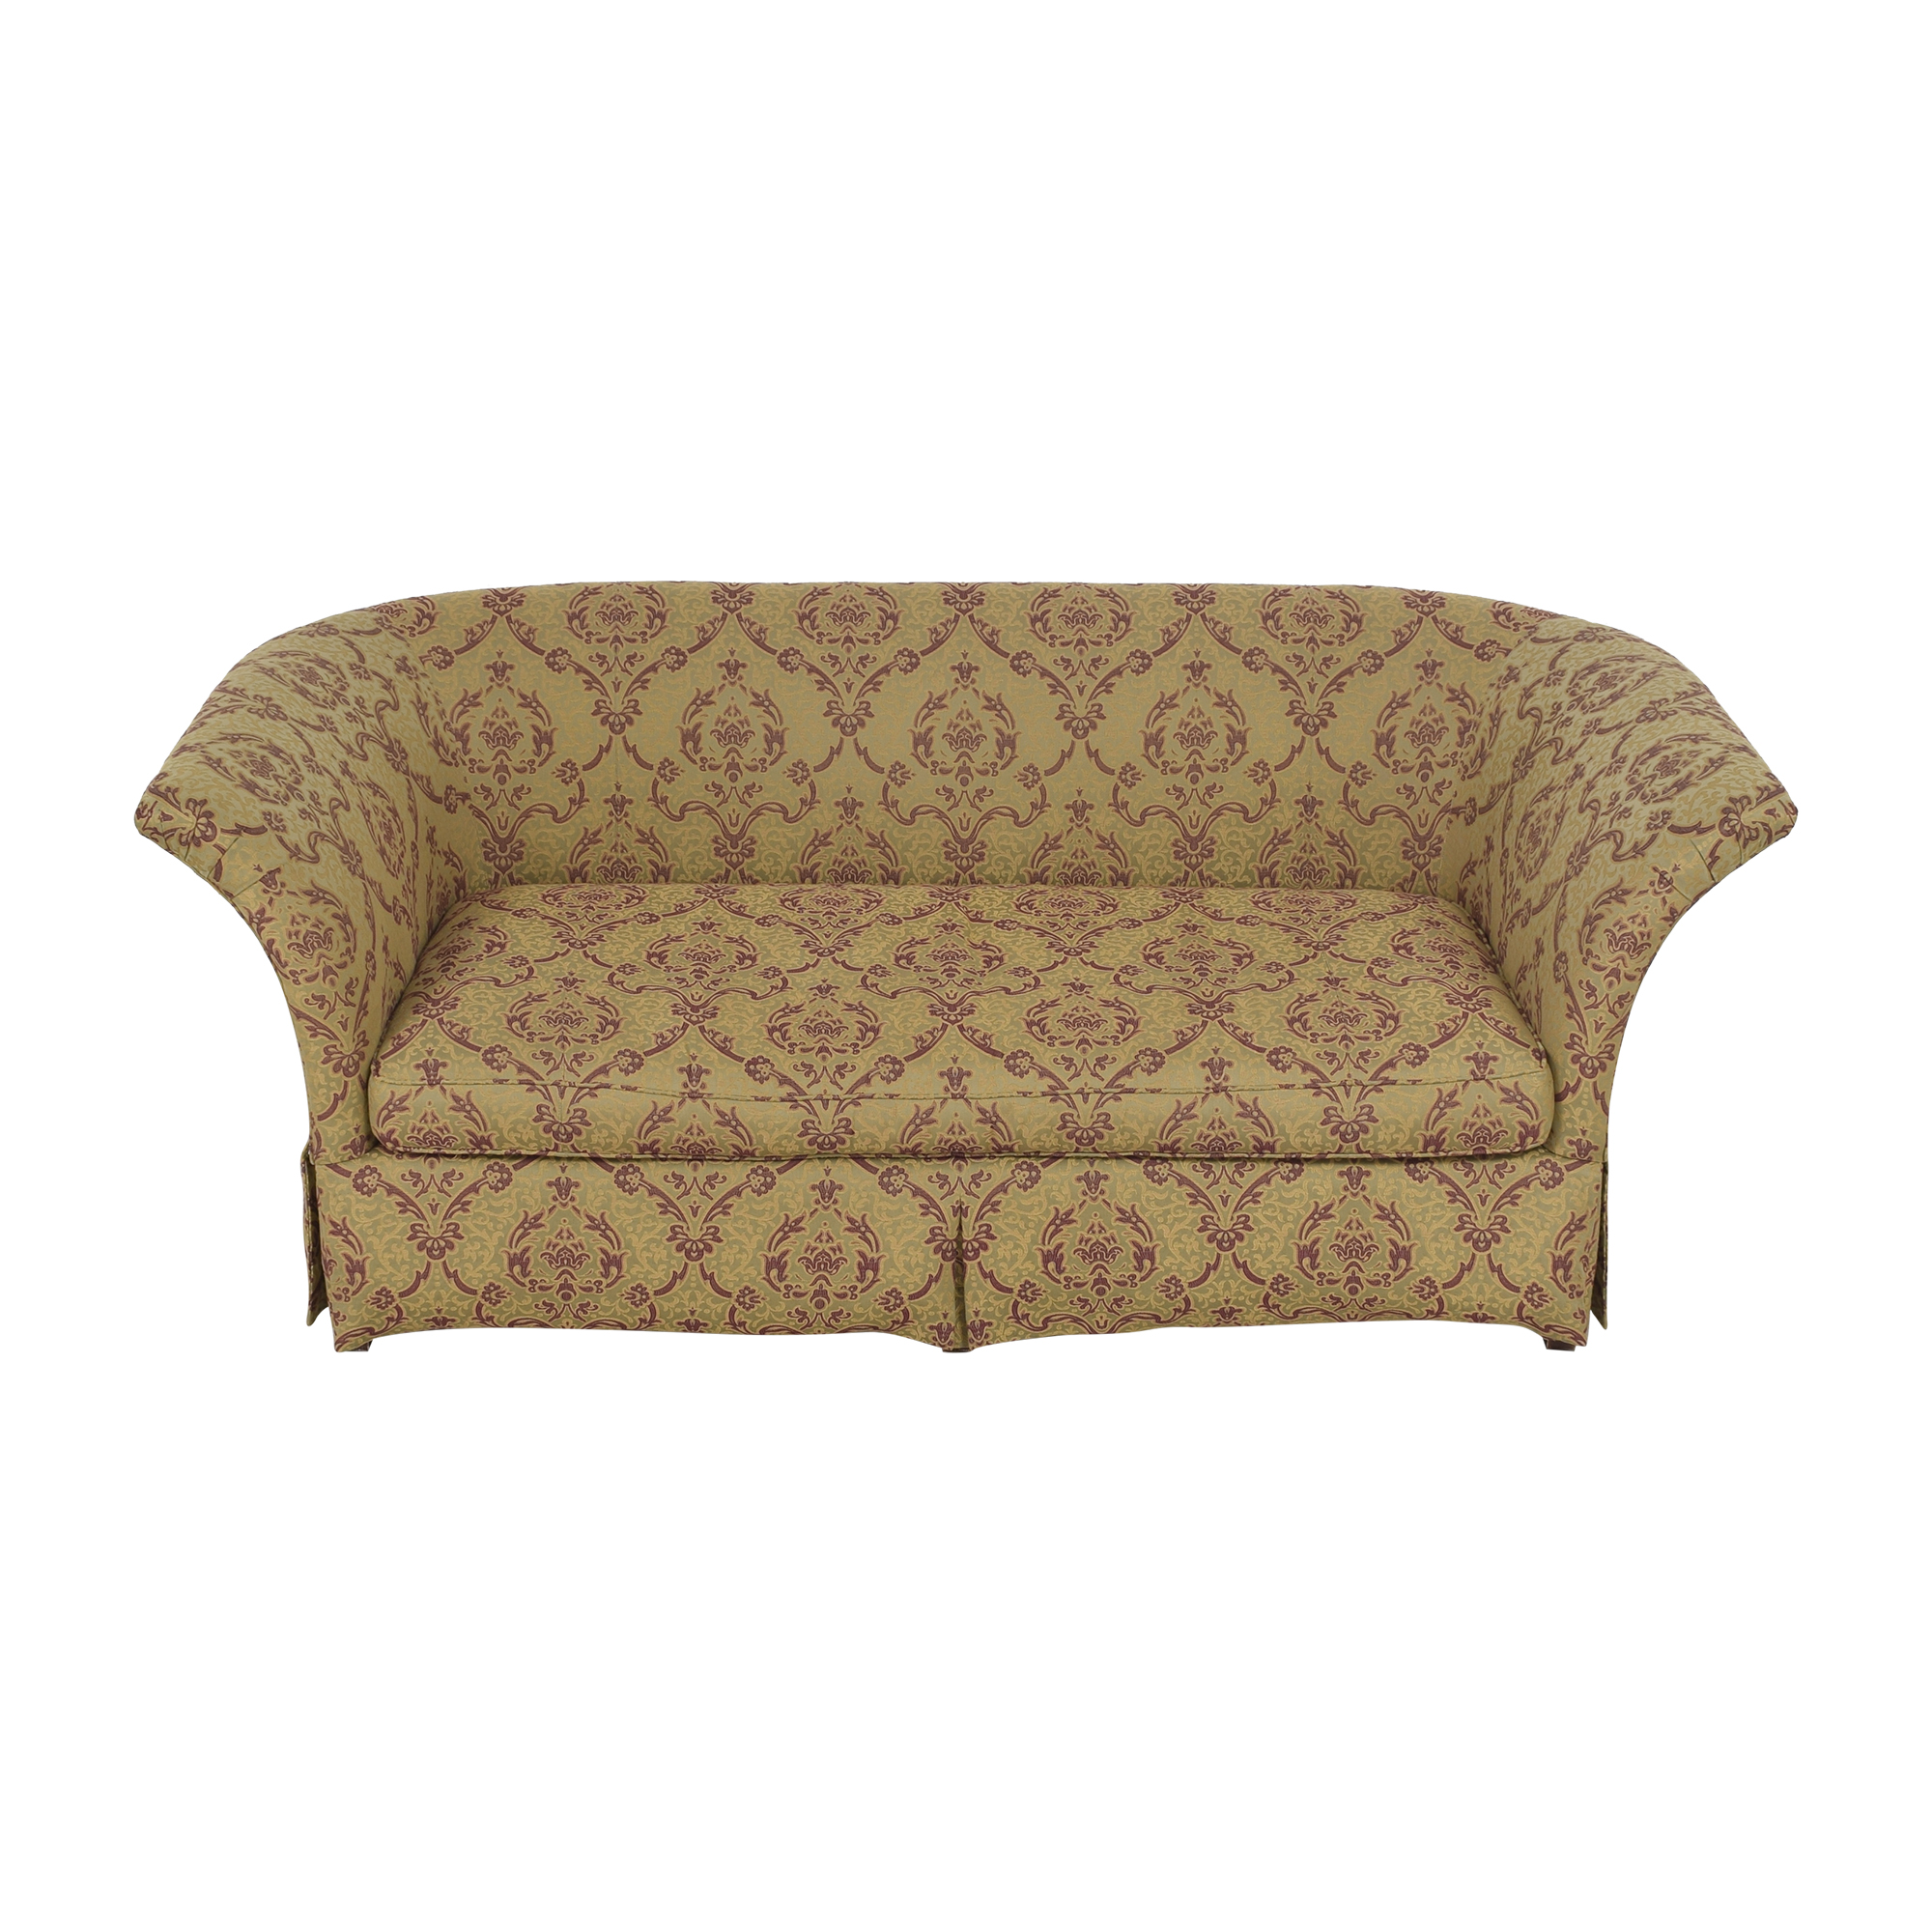 Drexel Heritage Flared Arm Sofa sale